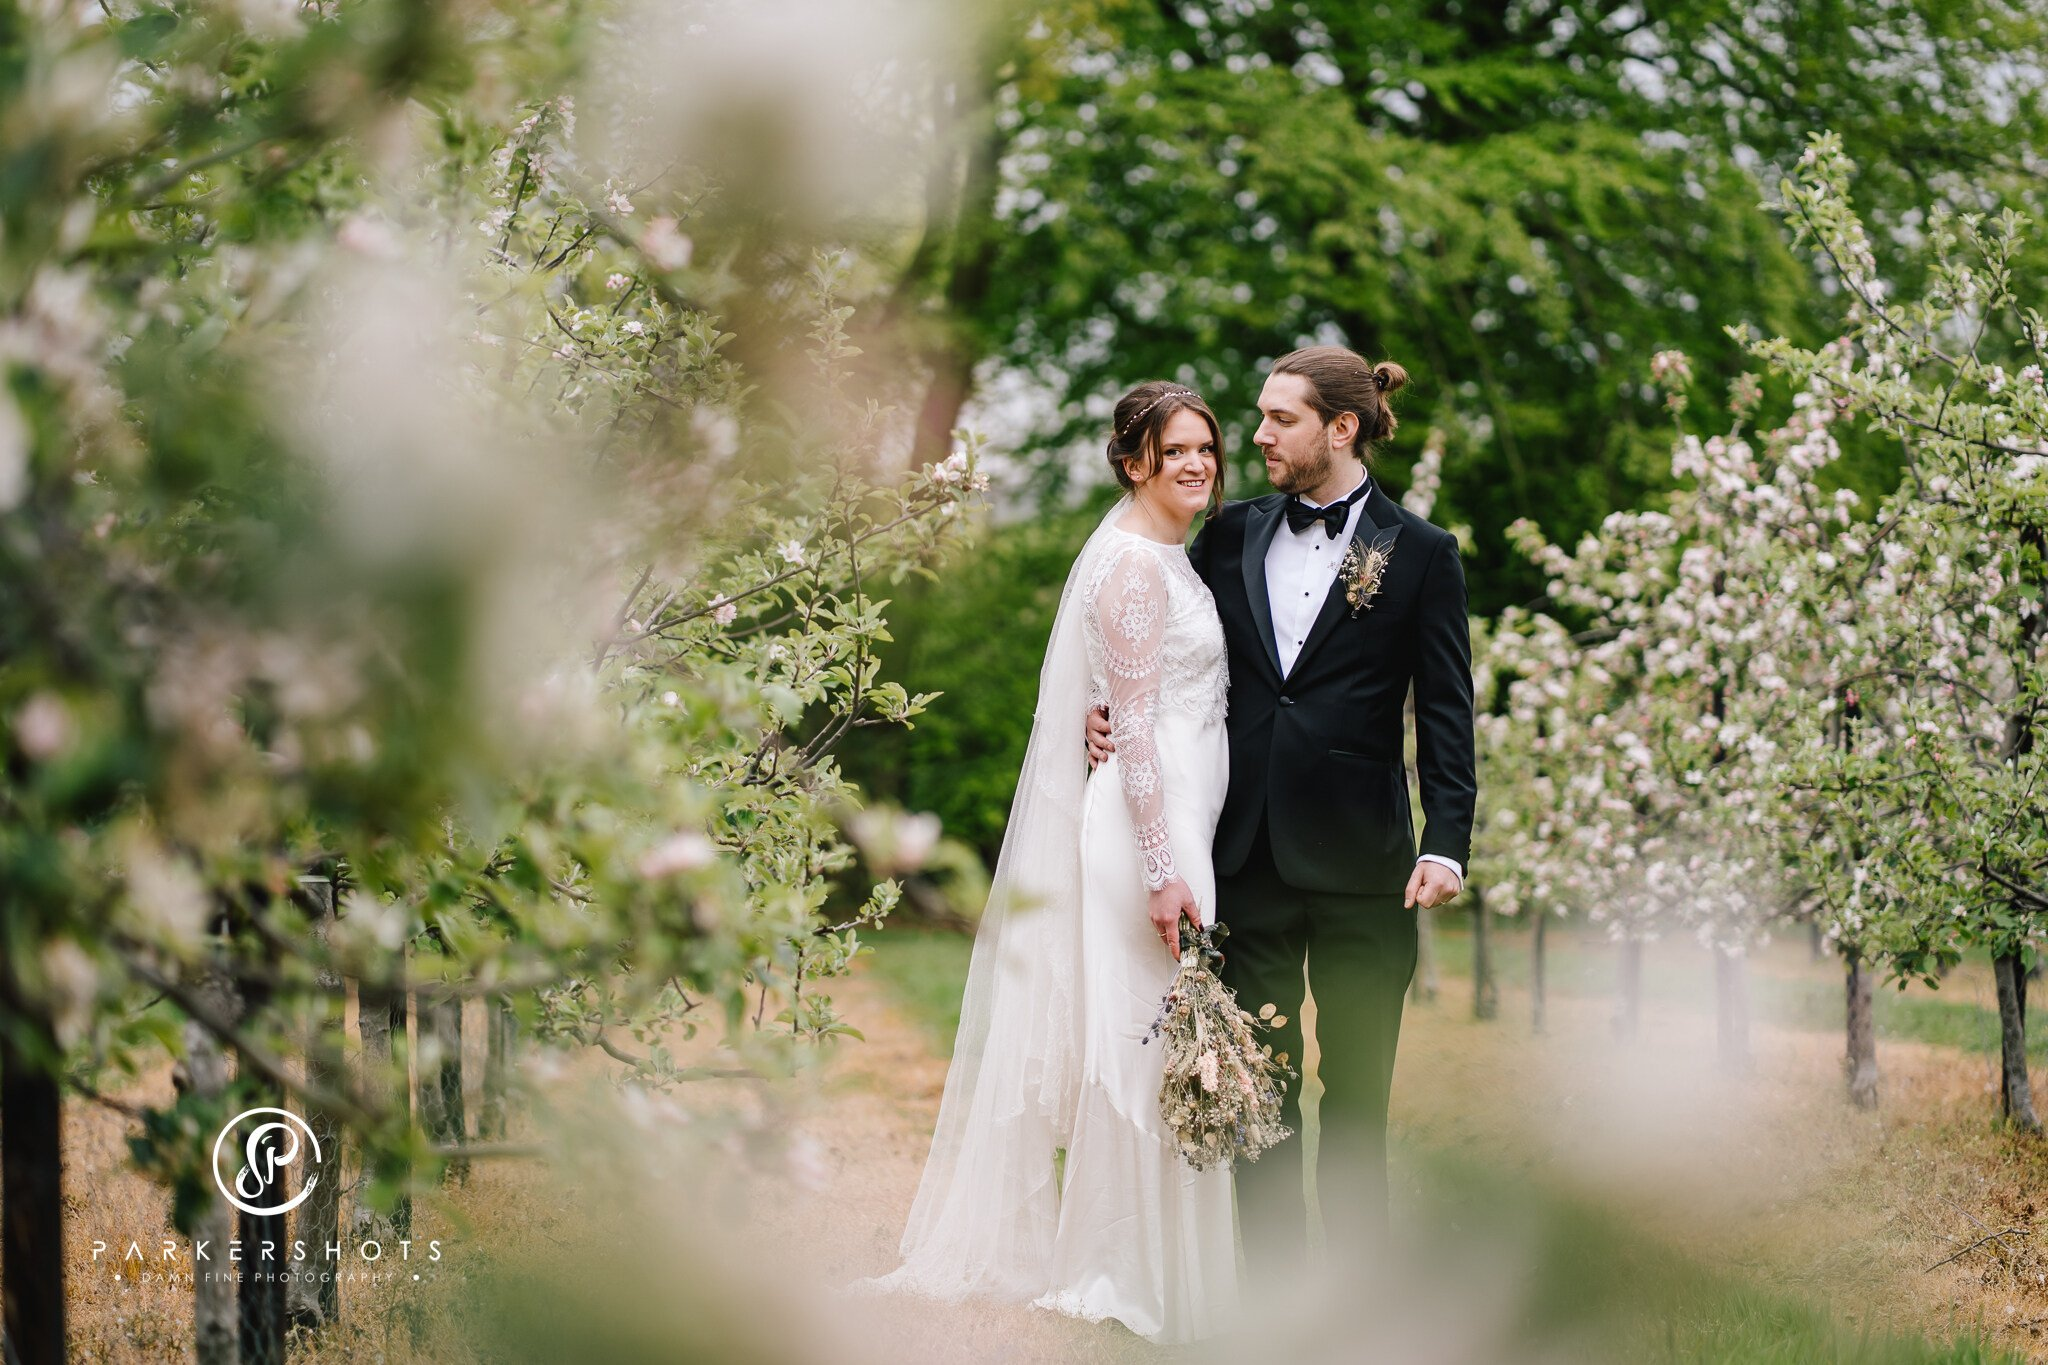 Wedding Photography of bride and groom married at All Saints Church Brenchley